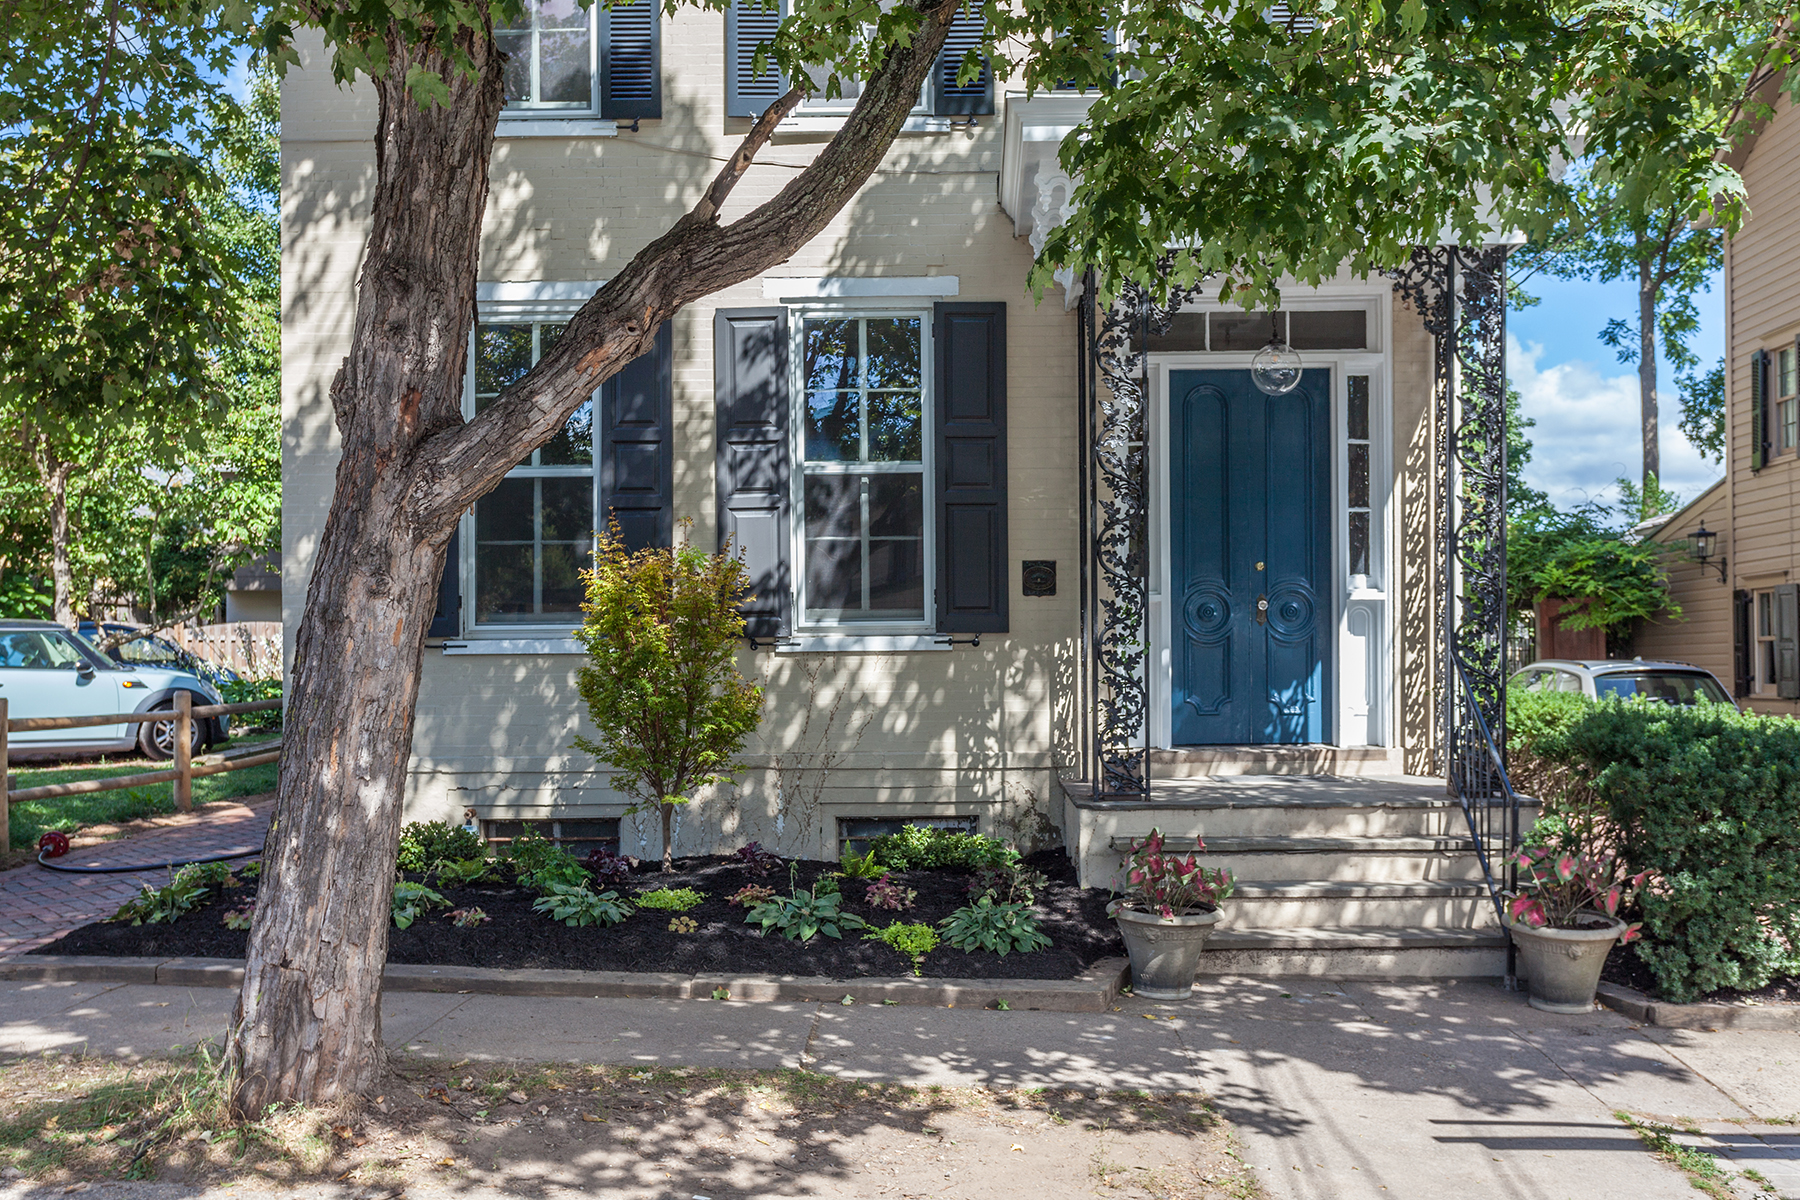 Single Family Home for Rent at All-New Apartment 72 W BRIDGE ST #B B New Hope, Pennsylvania 18938 United States